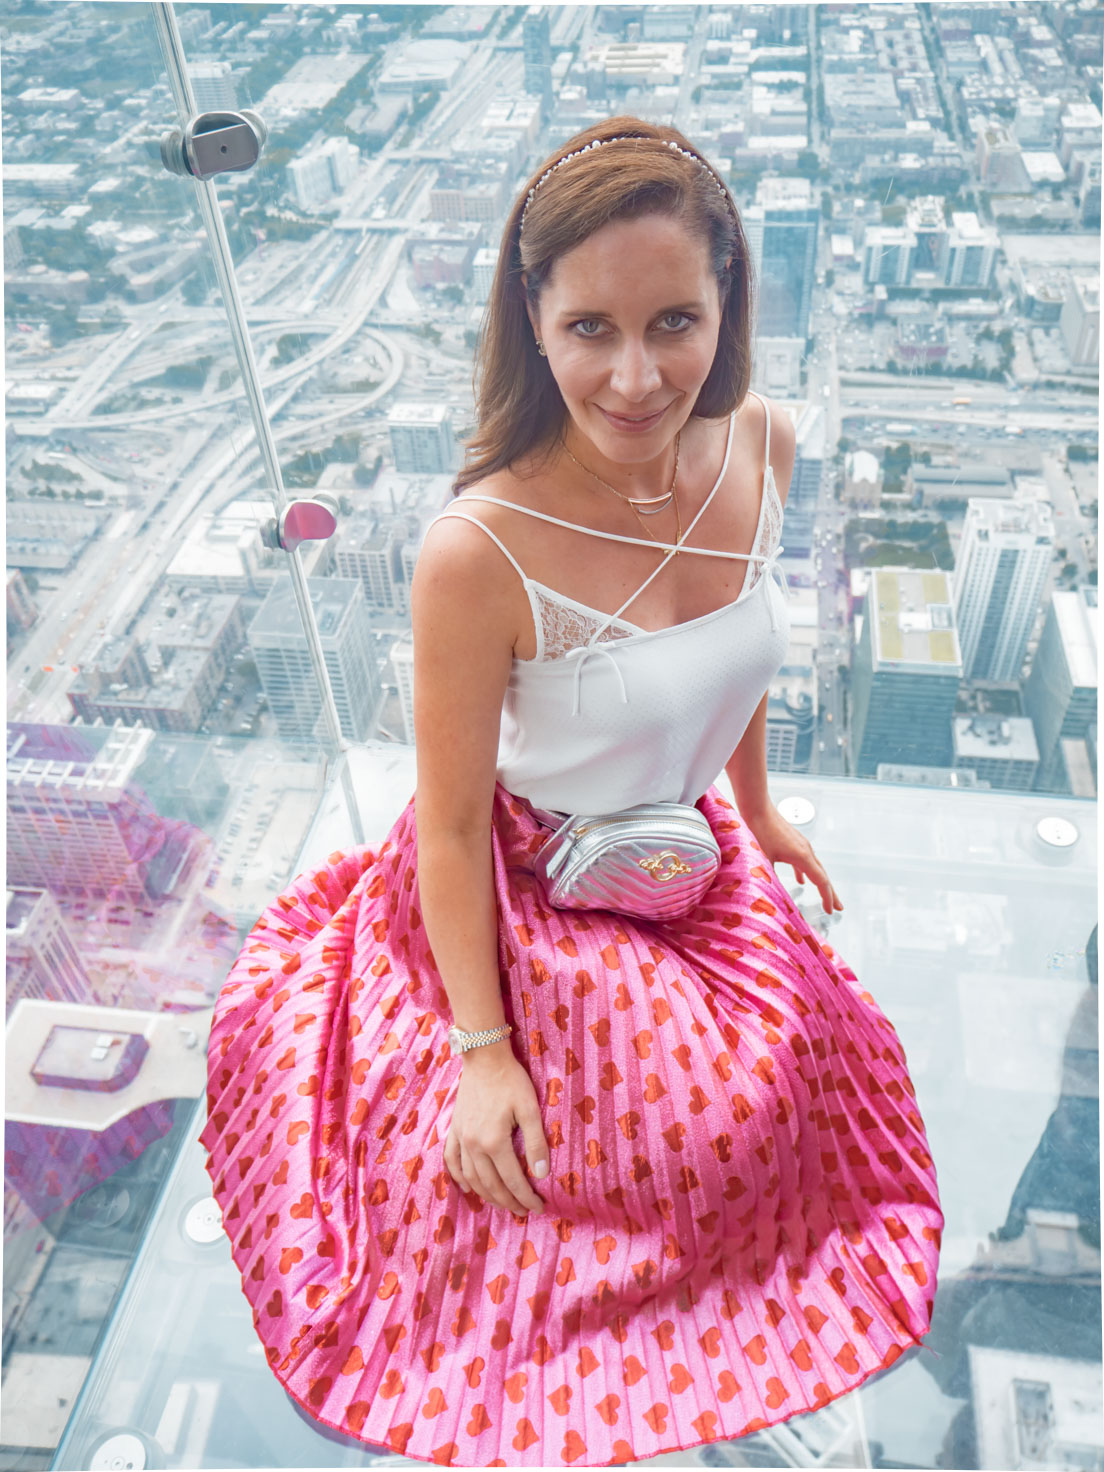 Petra from Chic Journal at Willis Tower Skydeck in Chicago